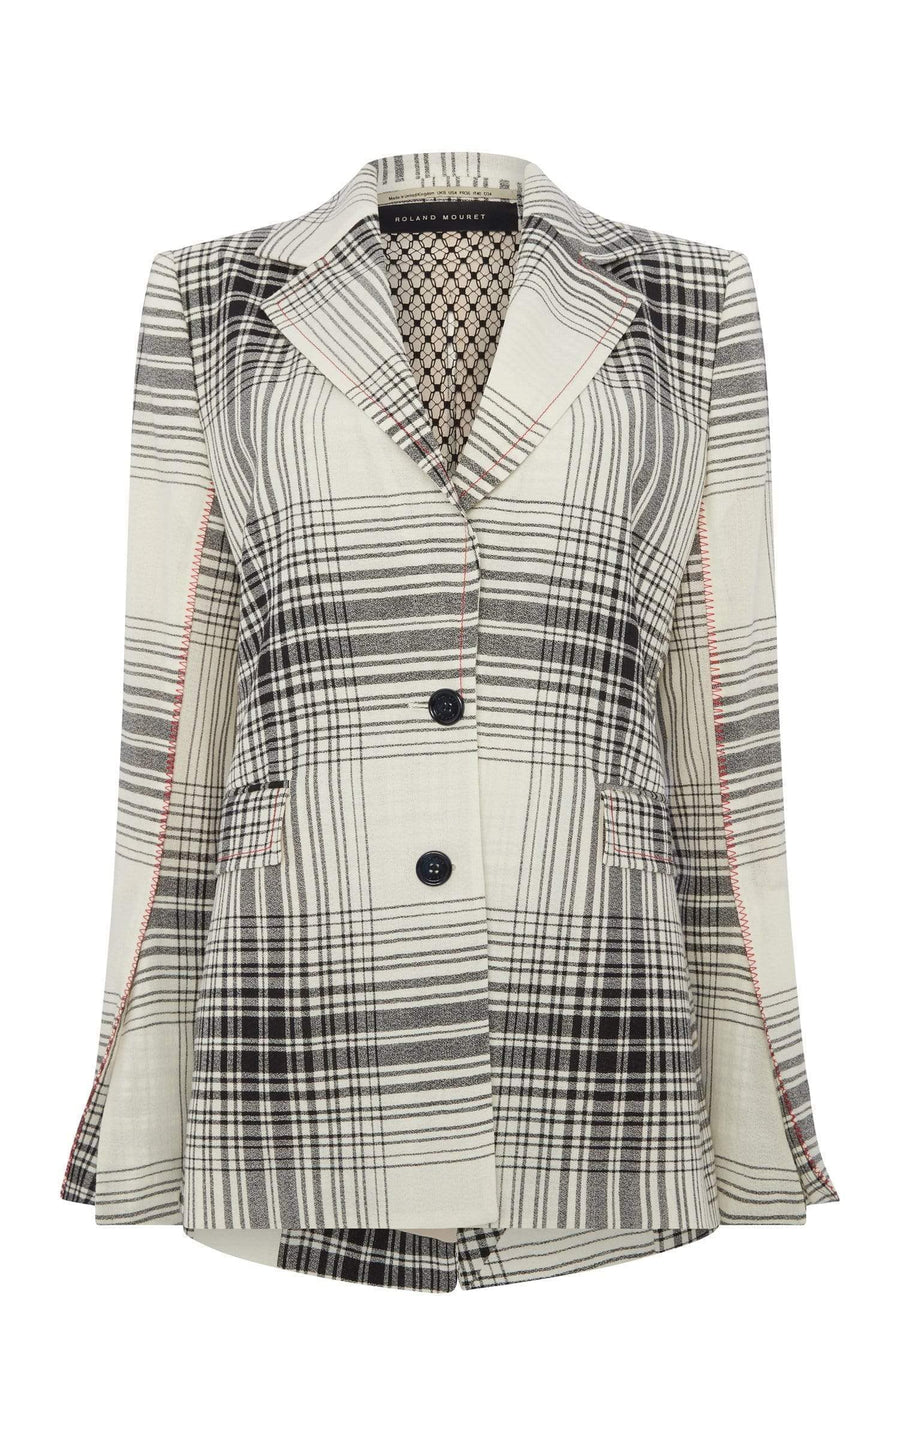 Moorehead Jacket In Monochrome from Roland Mouret